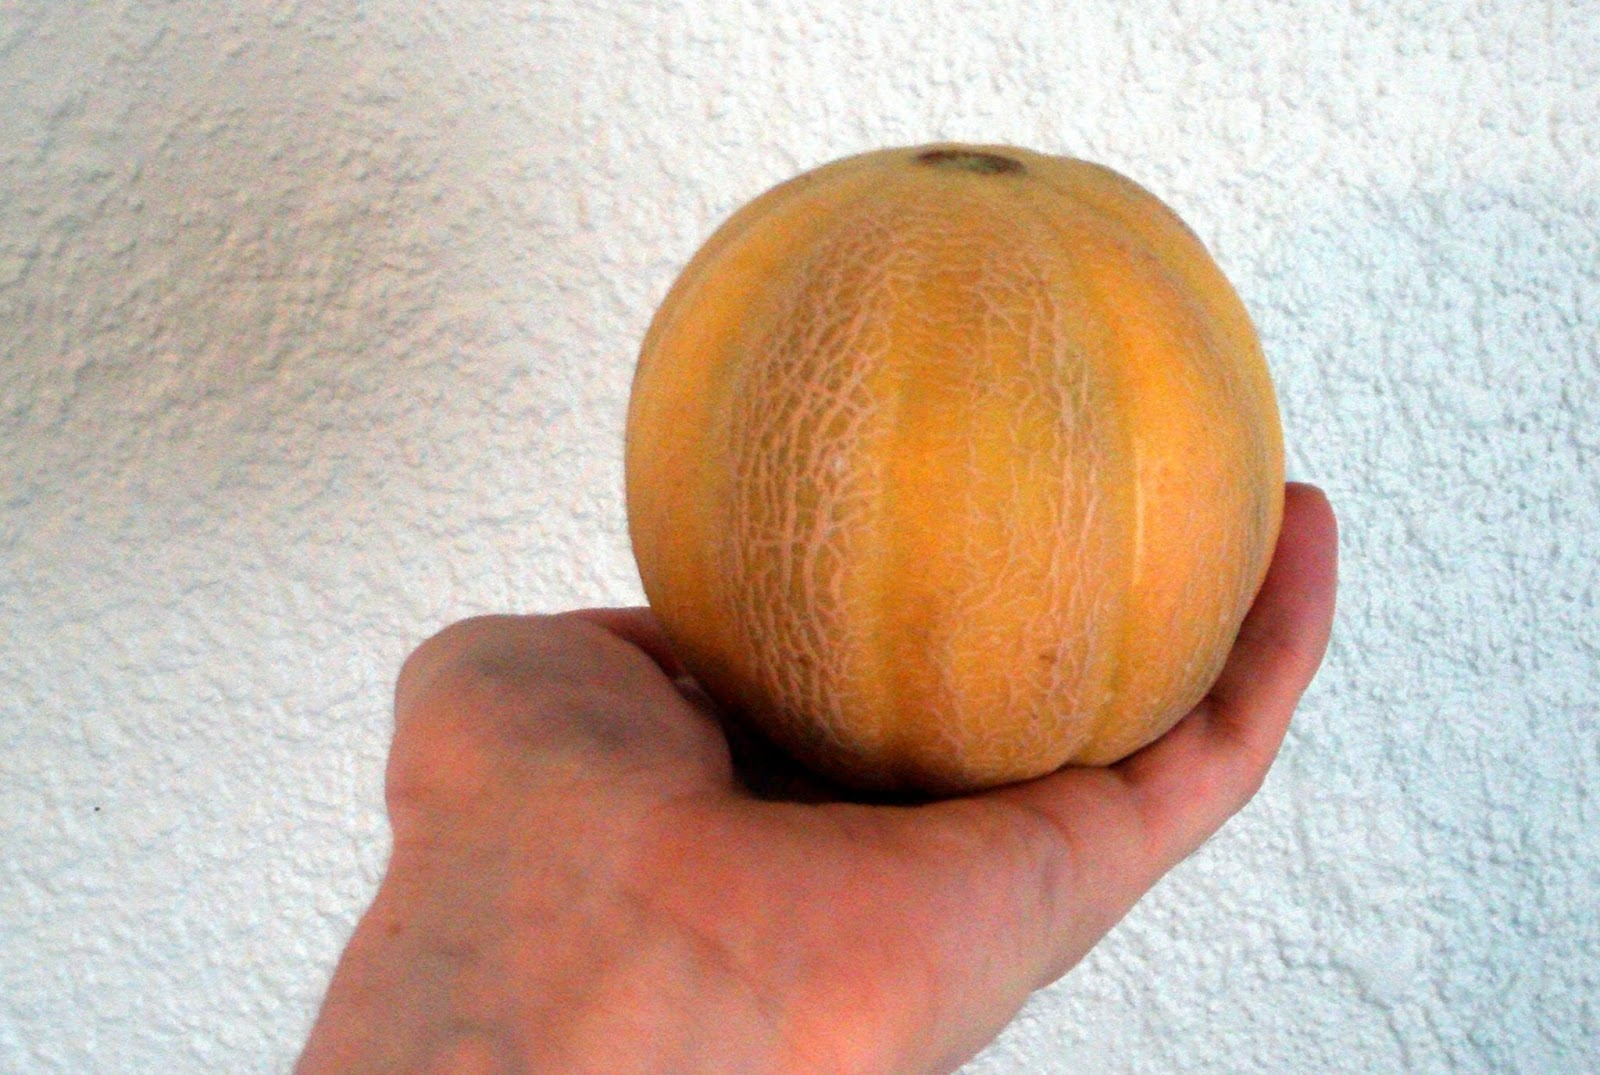 Pint Size Cantaloupe Maryland Grows Sizes runs small , read item description about sizing. pint size cantaloupe maryland grows